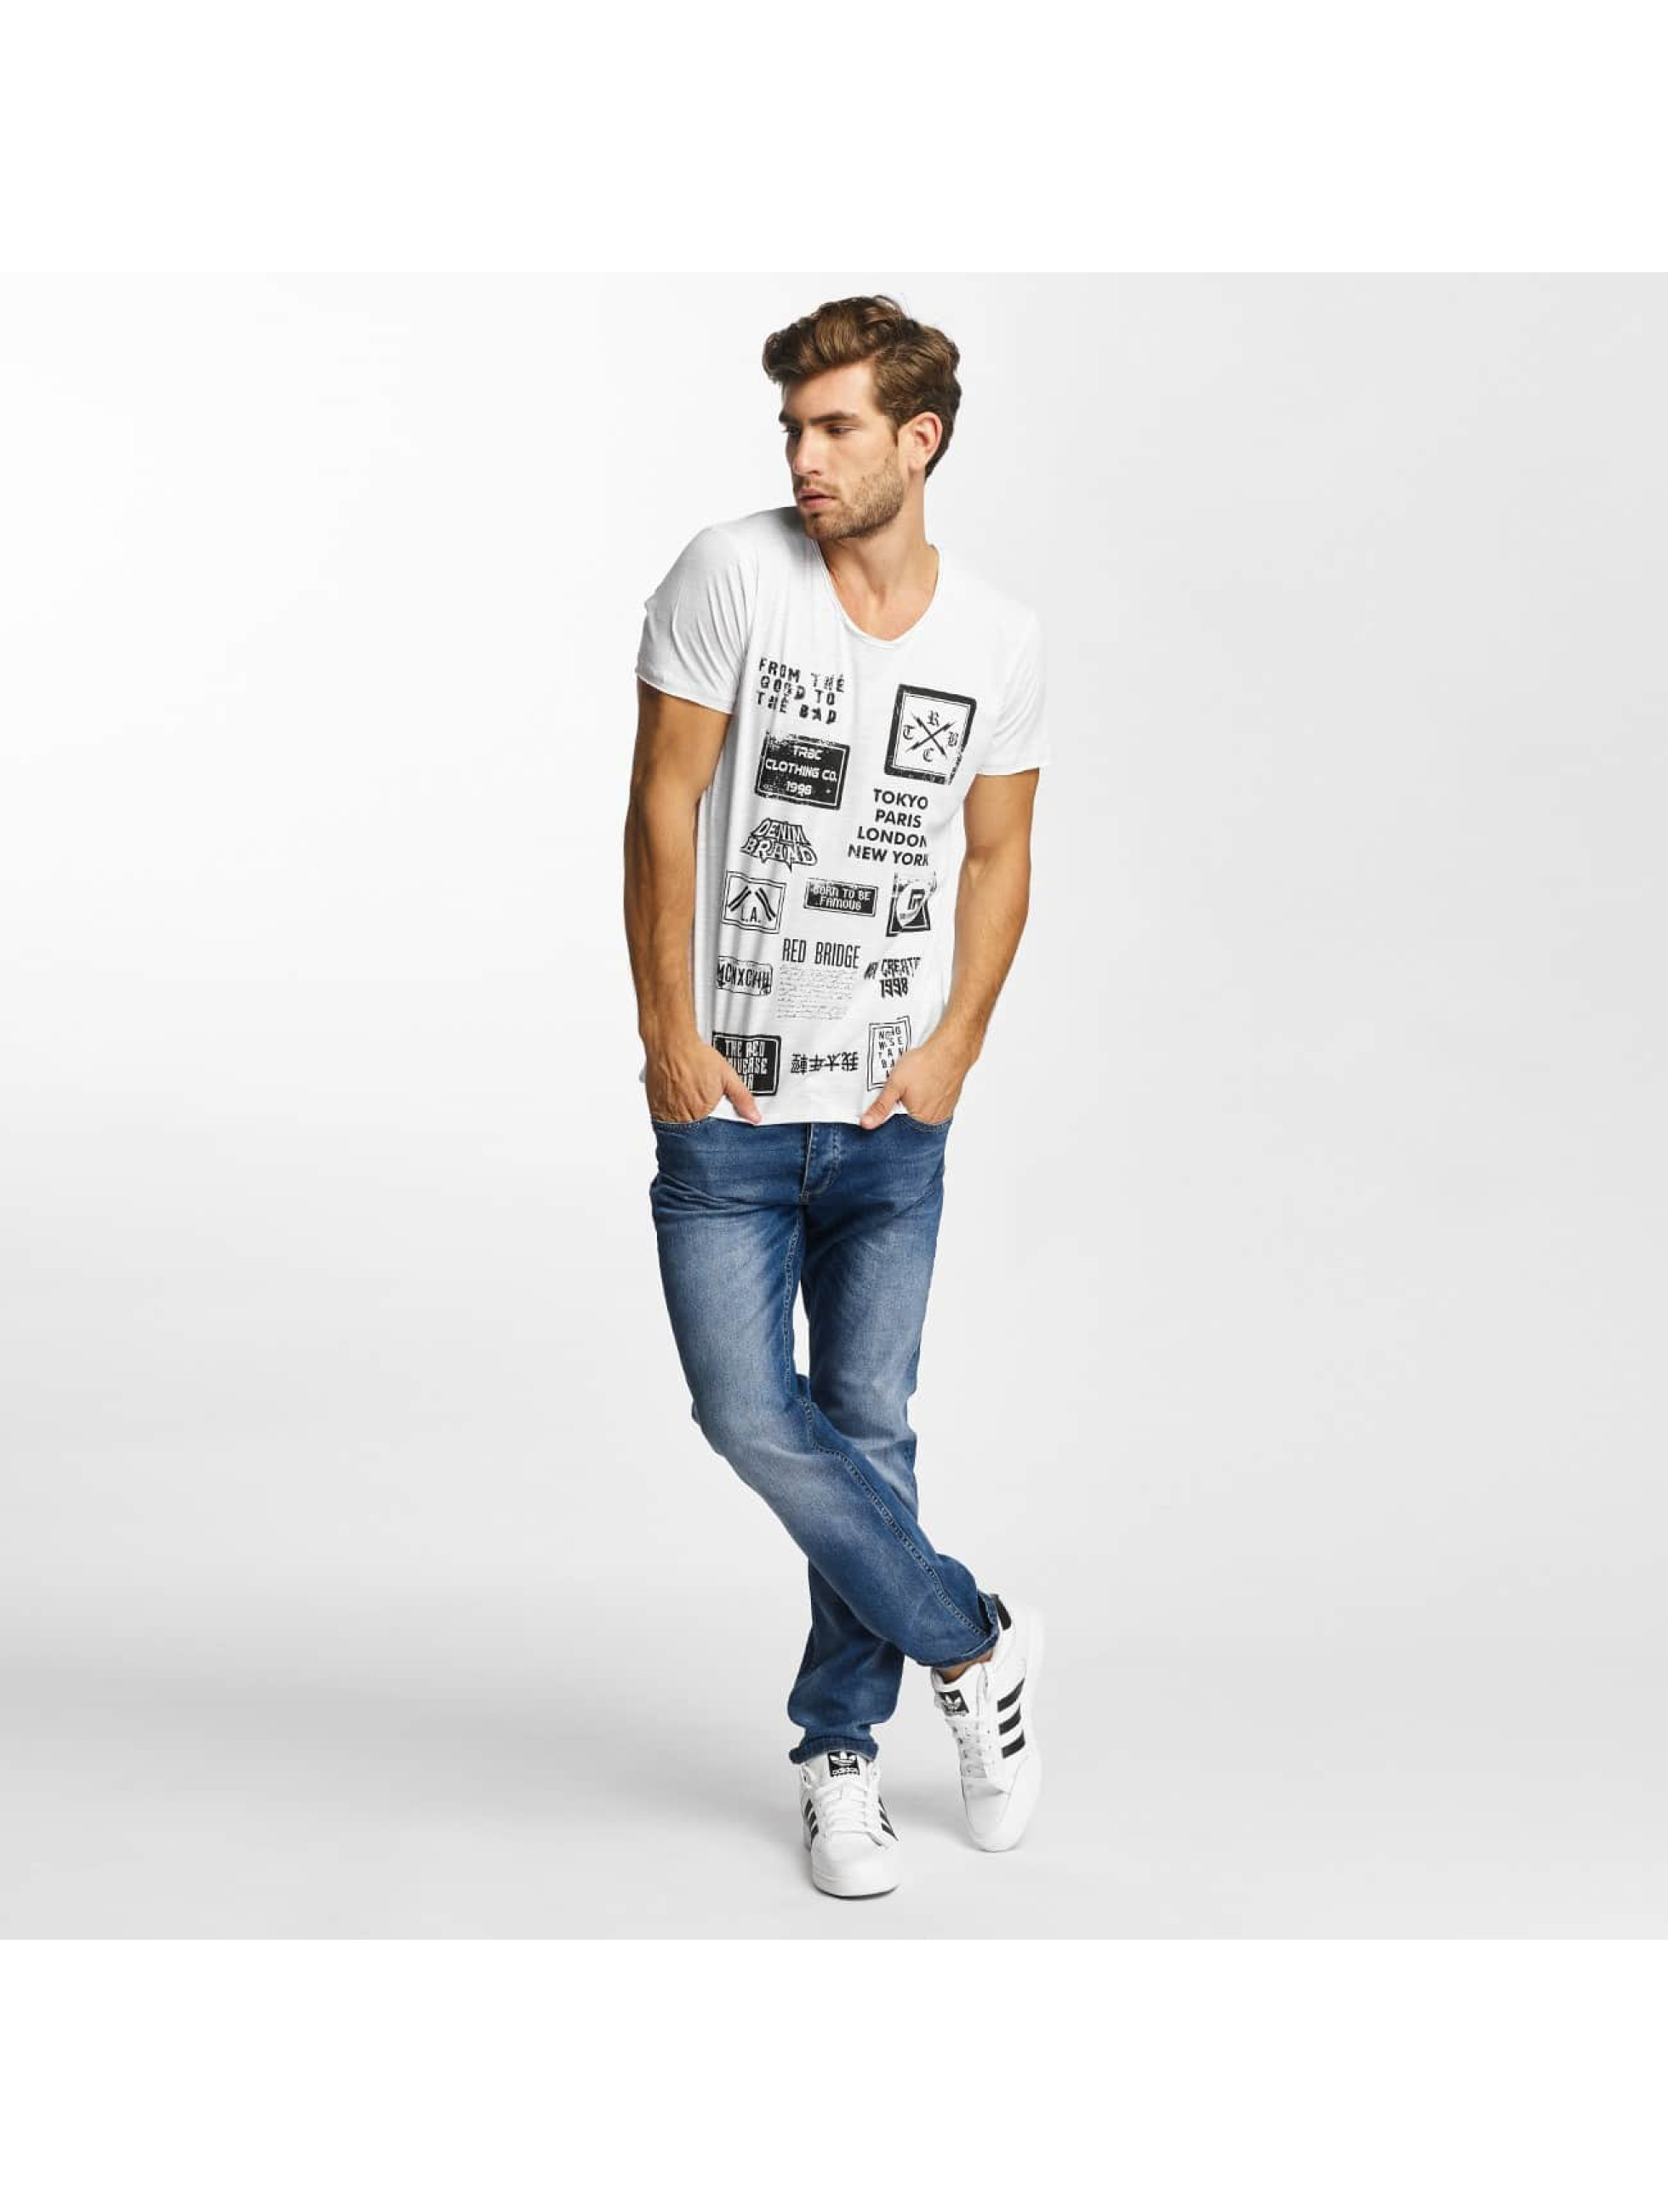 Red Bridge T-shirt From Good To Bad bianco